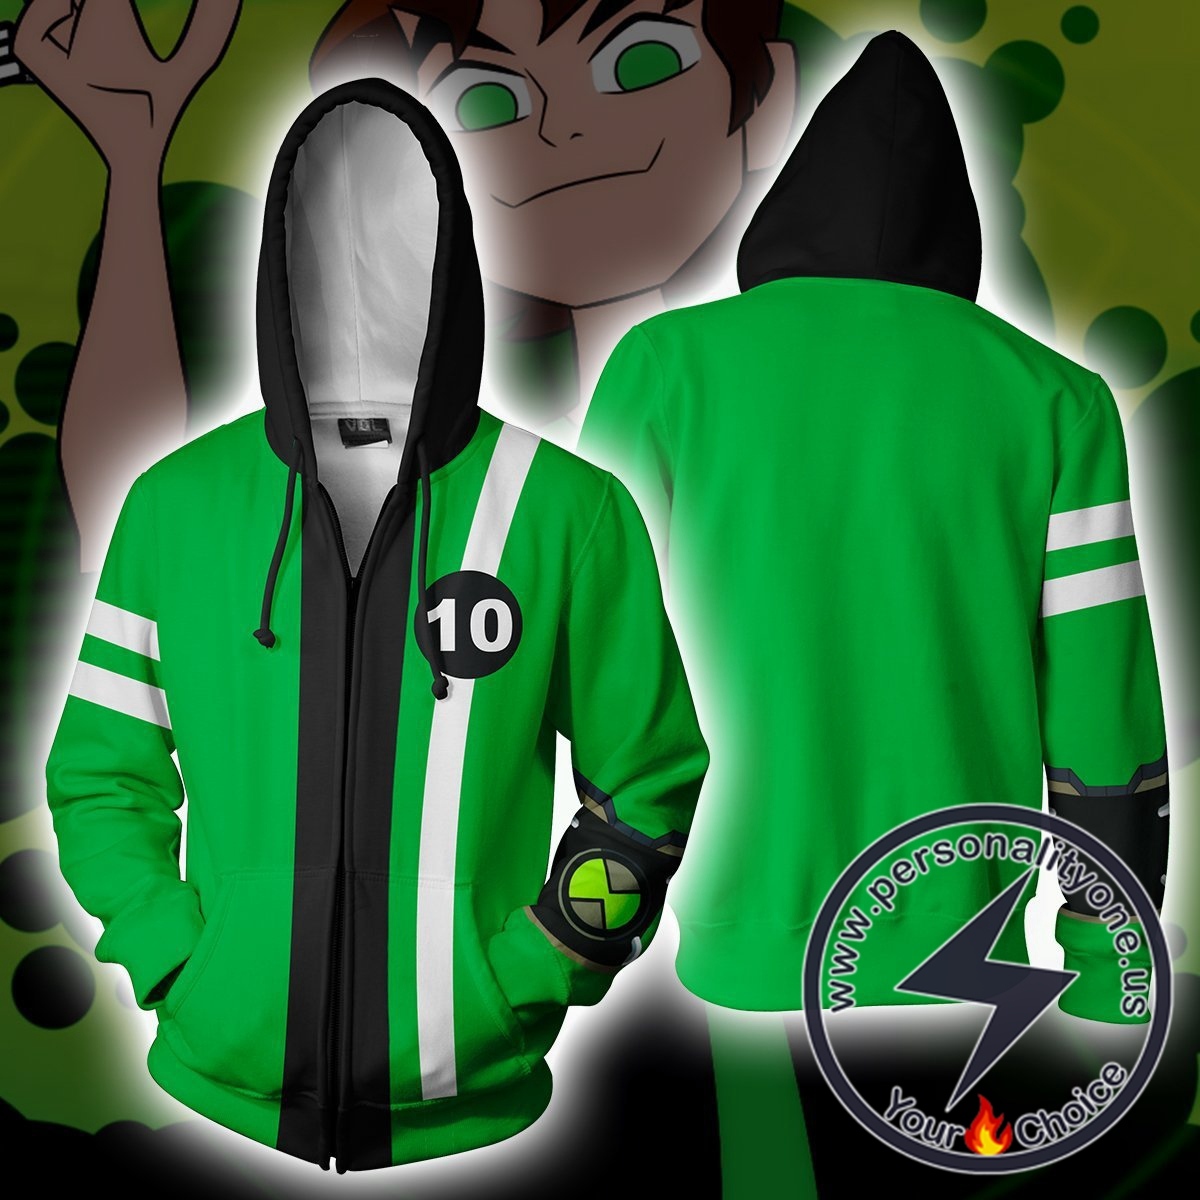 Ben 10 Green Costume Zip Up Hoodie Jacket